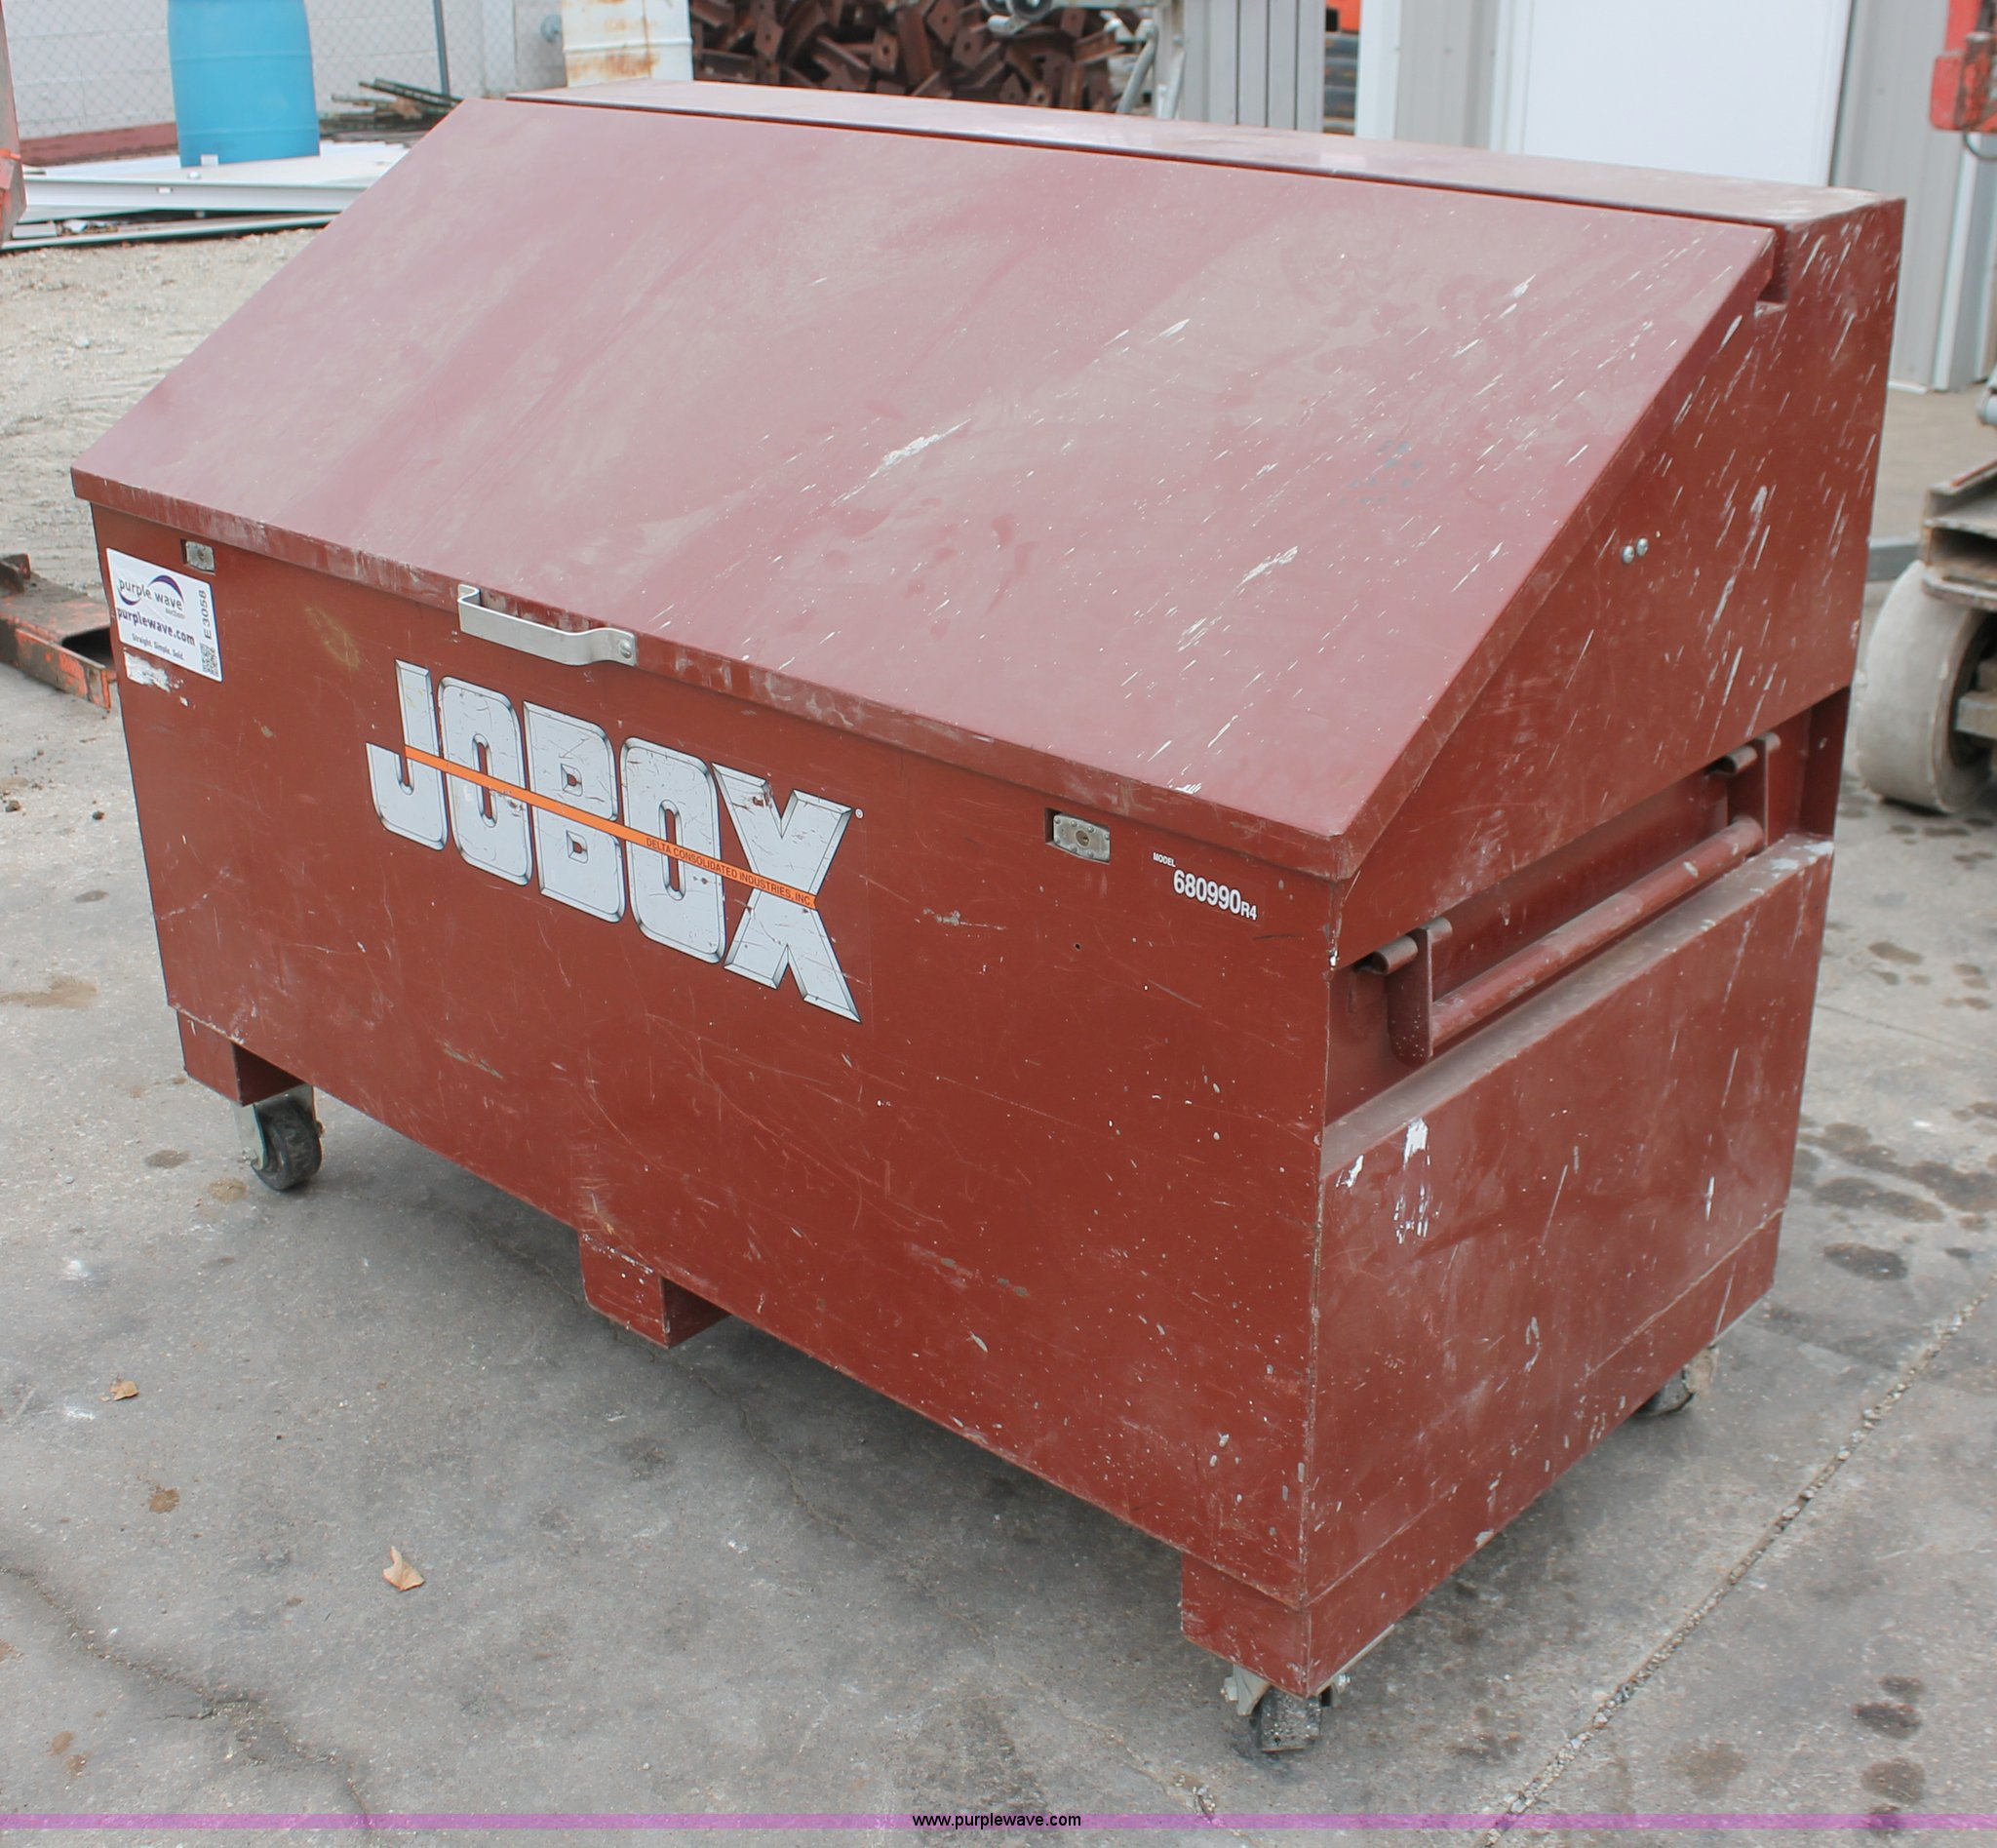 Gang Box For Sale >> Jobox Roll Around Gang Box Item E3058 Sold February 28